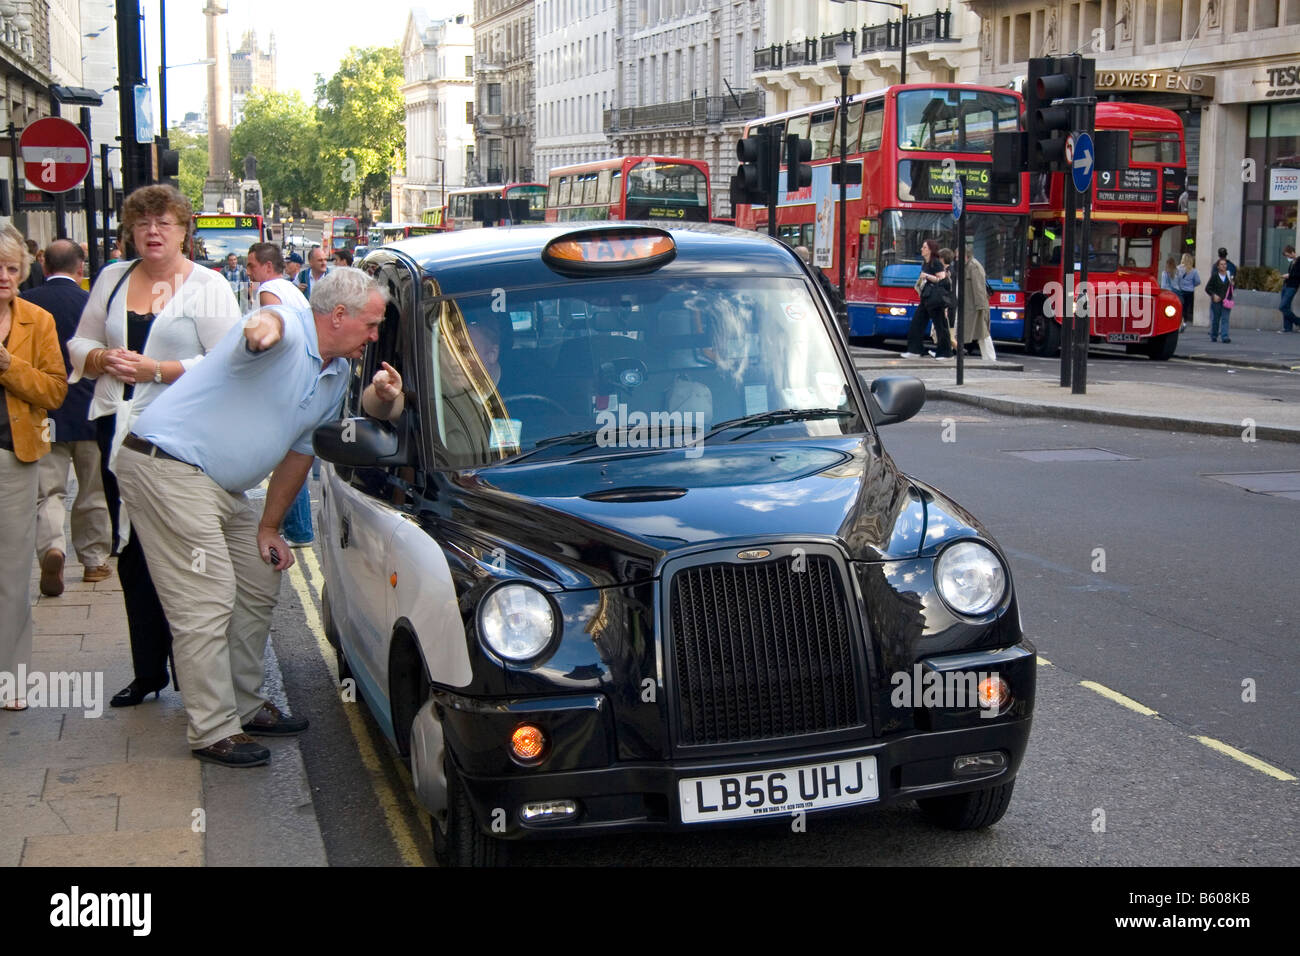 Hackney taxi cab driver giving directions to a pedestrian in the city of London England - Stock Image